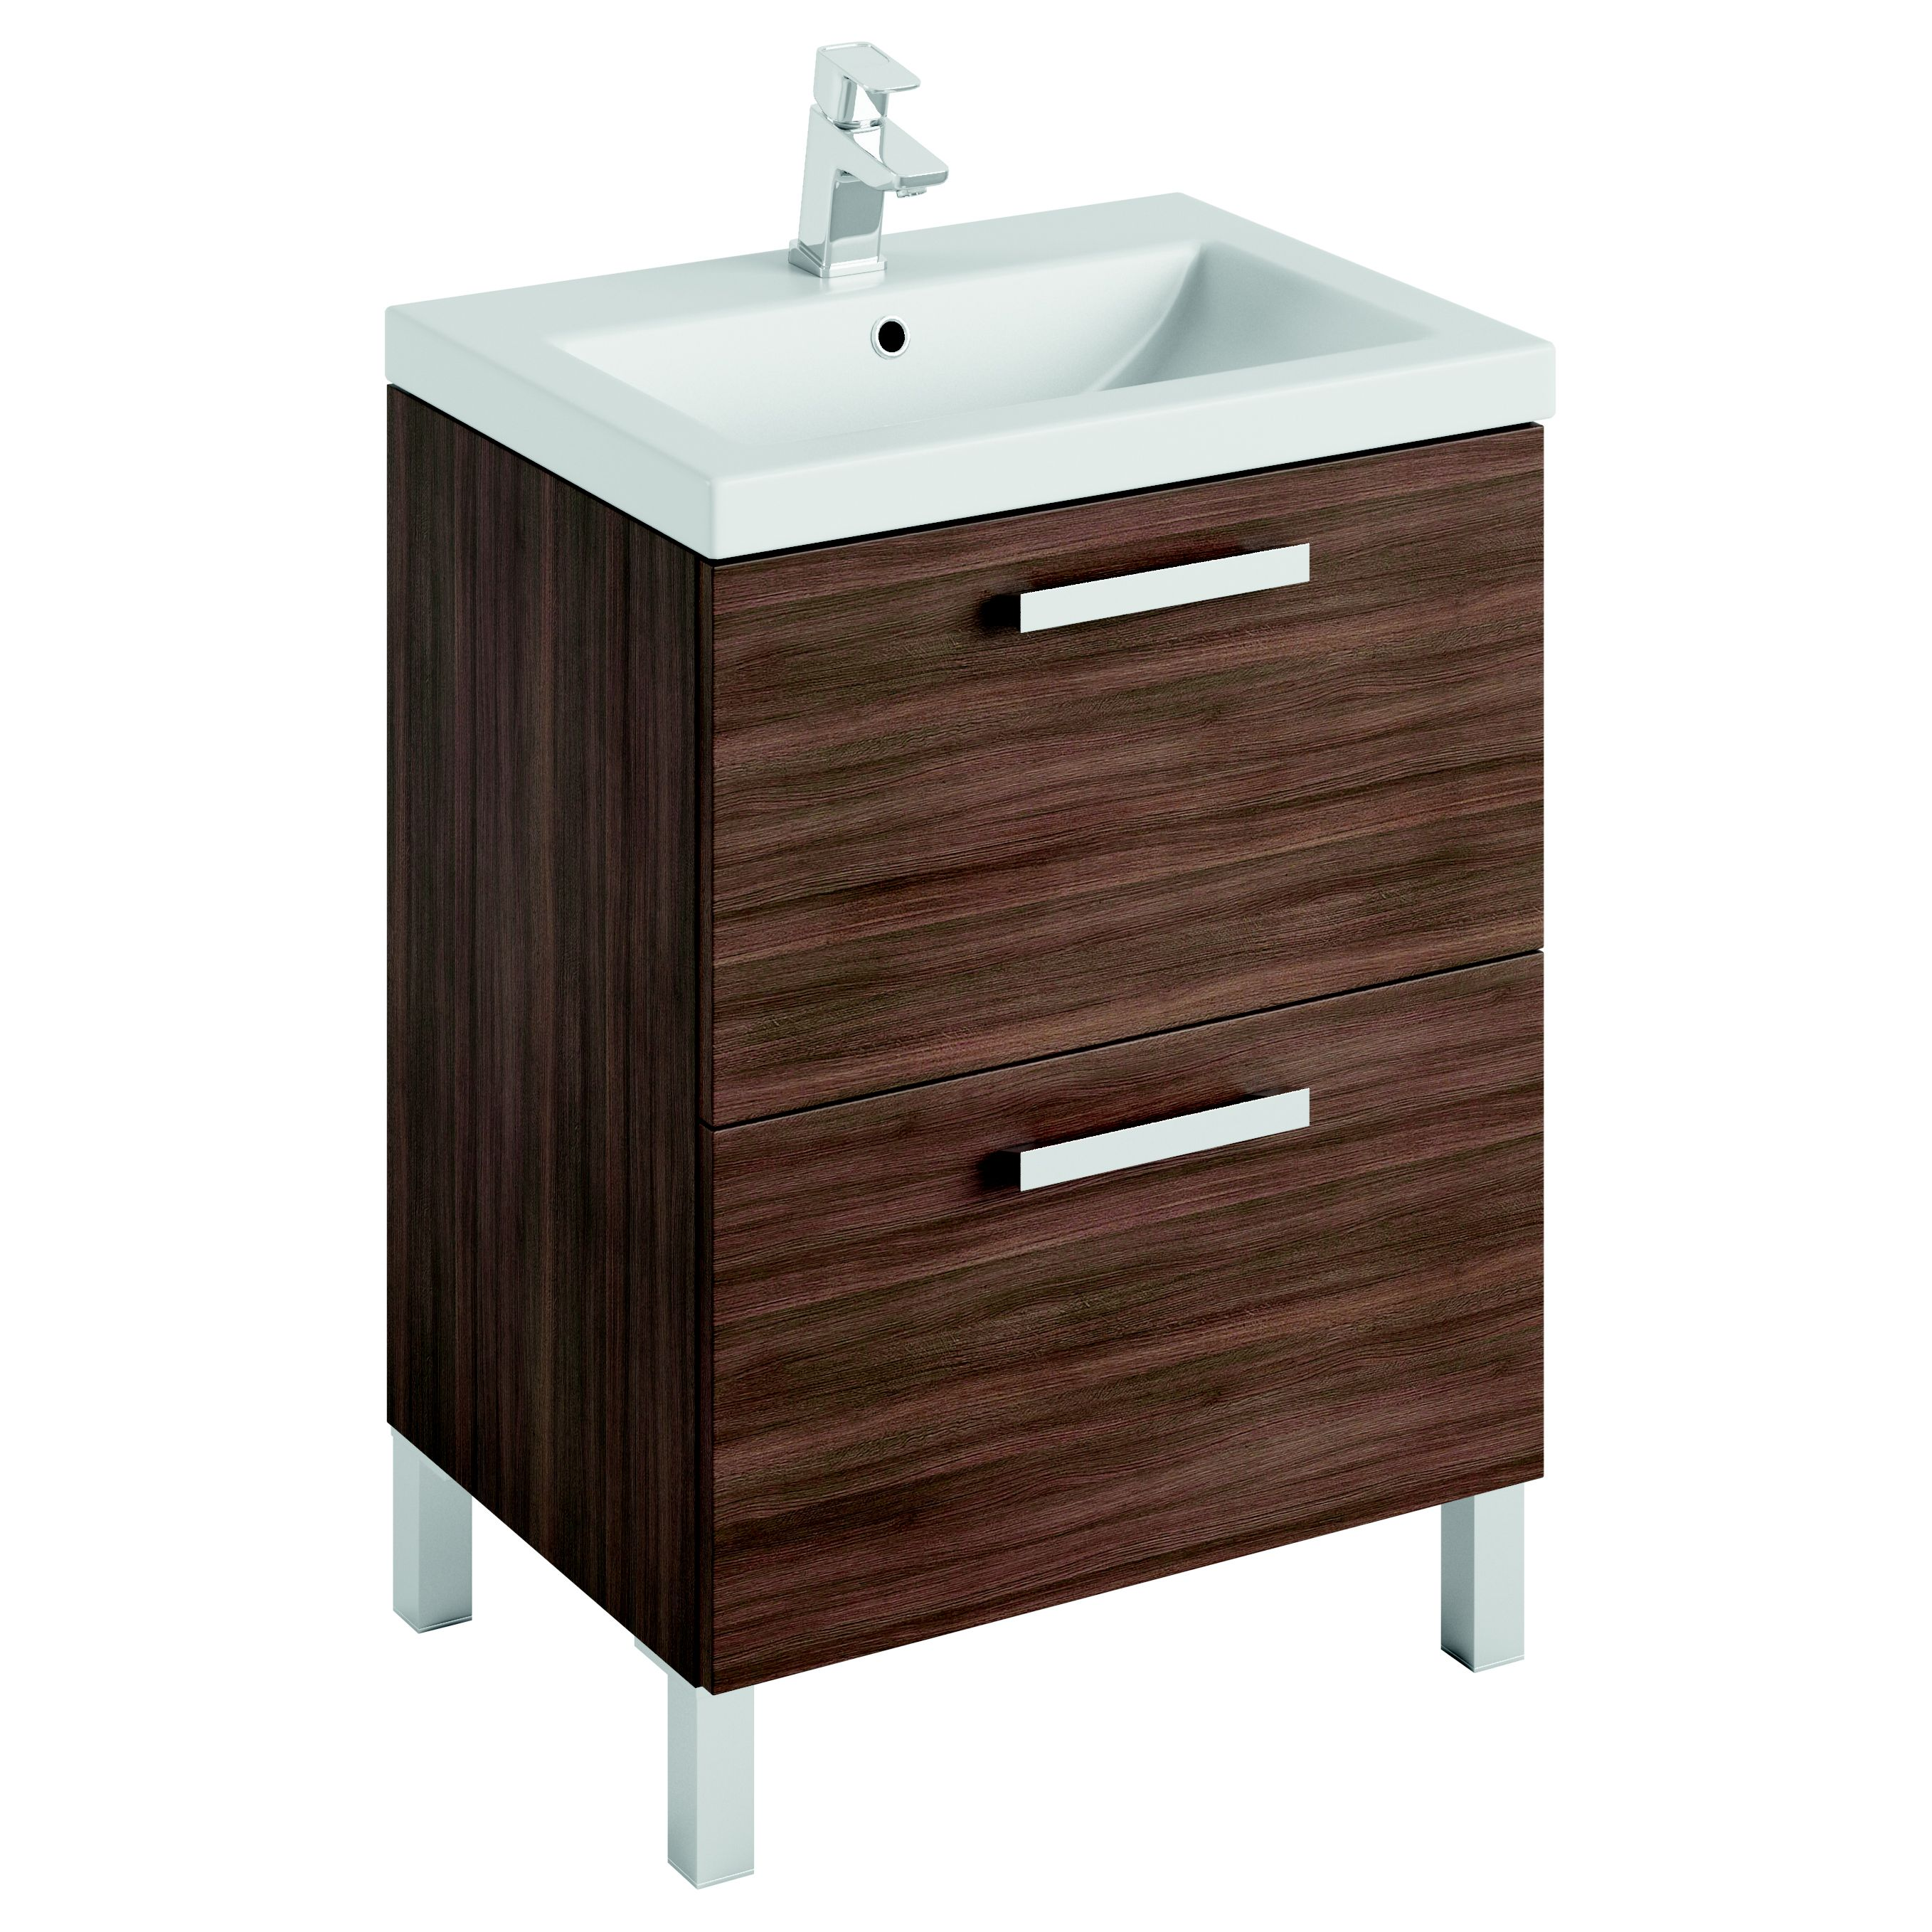 cooke lewis romana walnut effect vanity unit basin set departments diy at b q. Black Bedroom Furniture Sets. Home Design Ideas